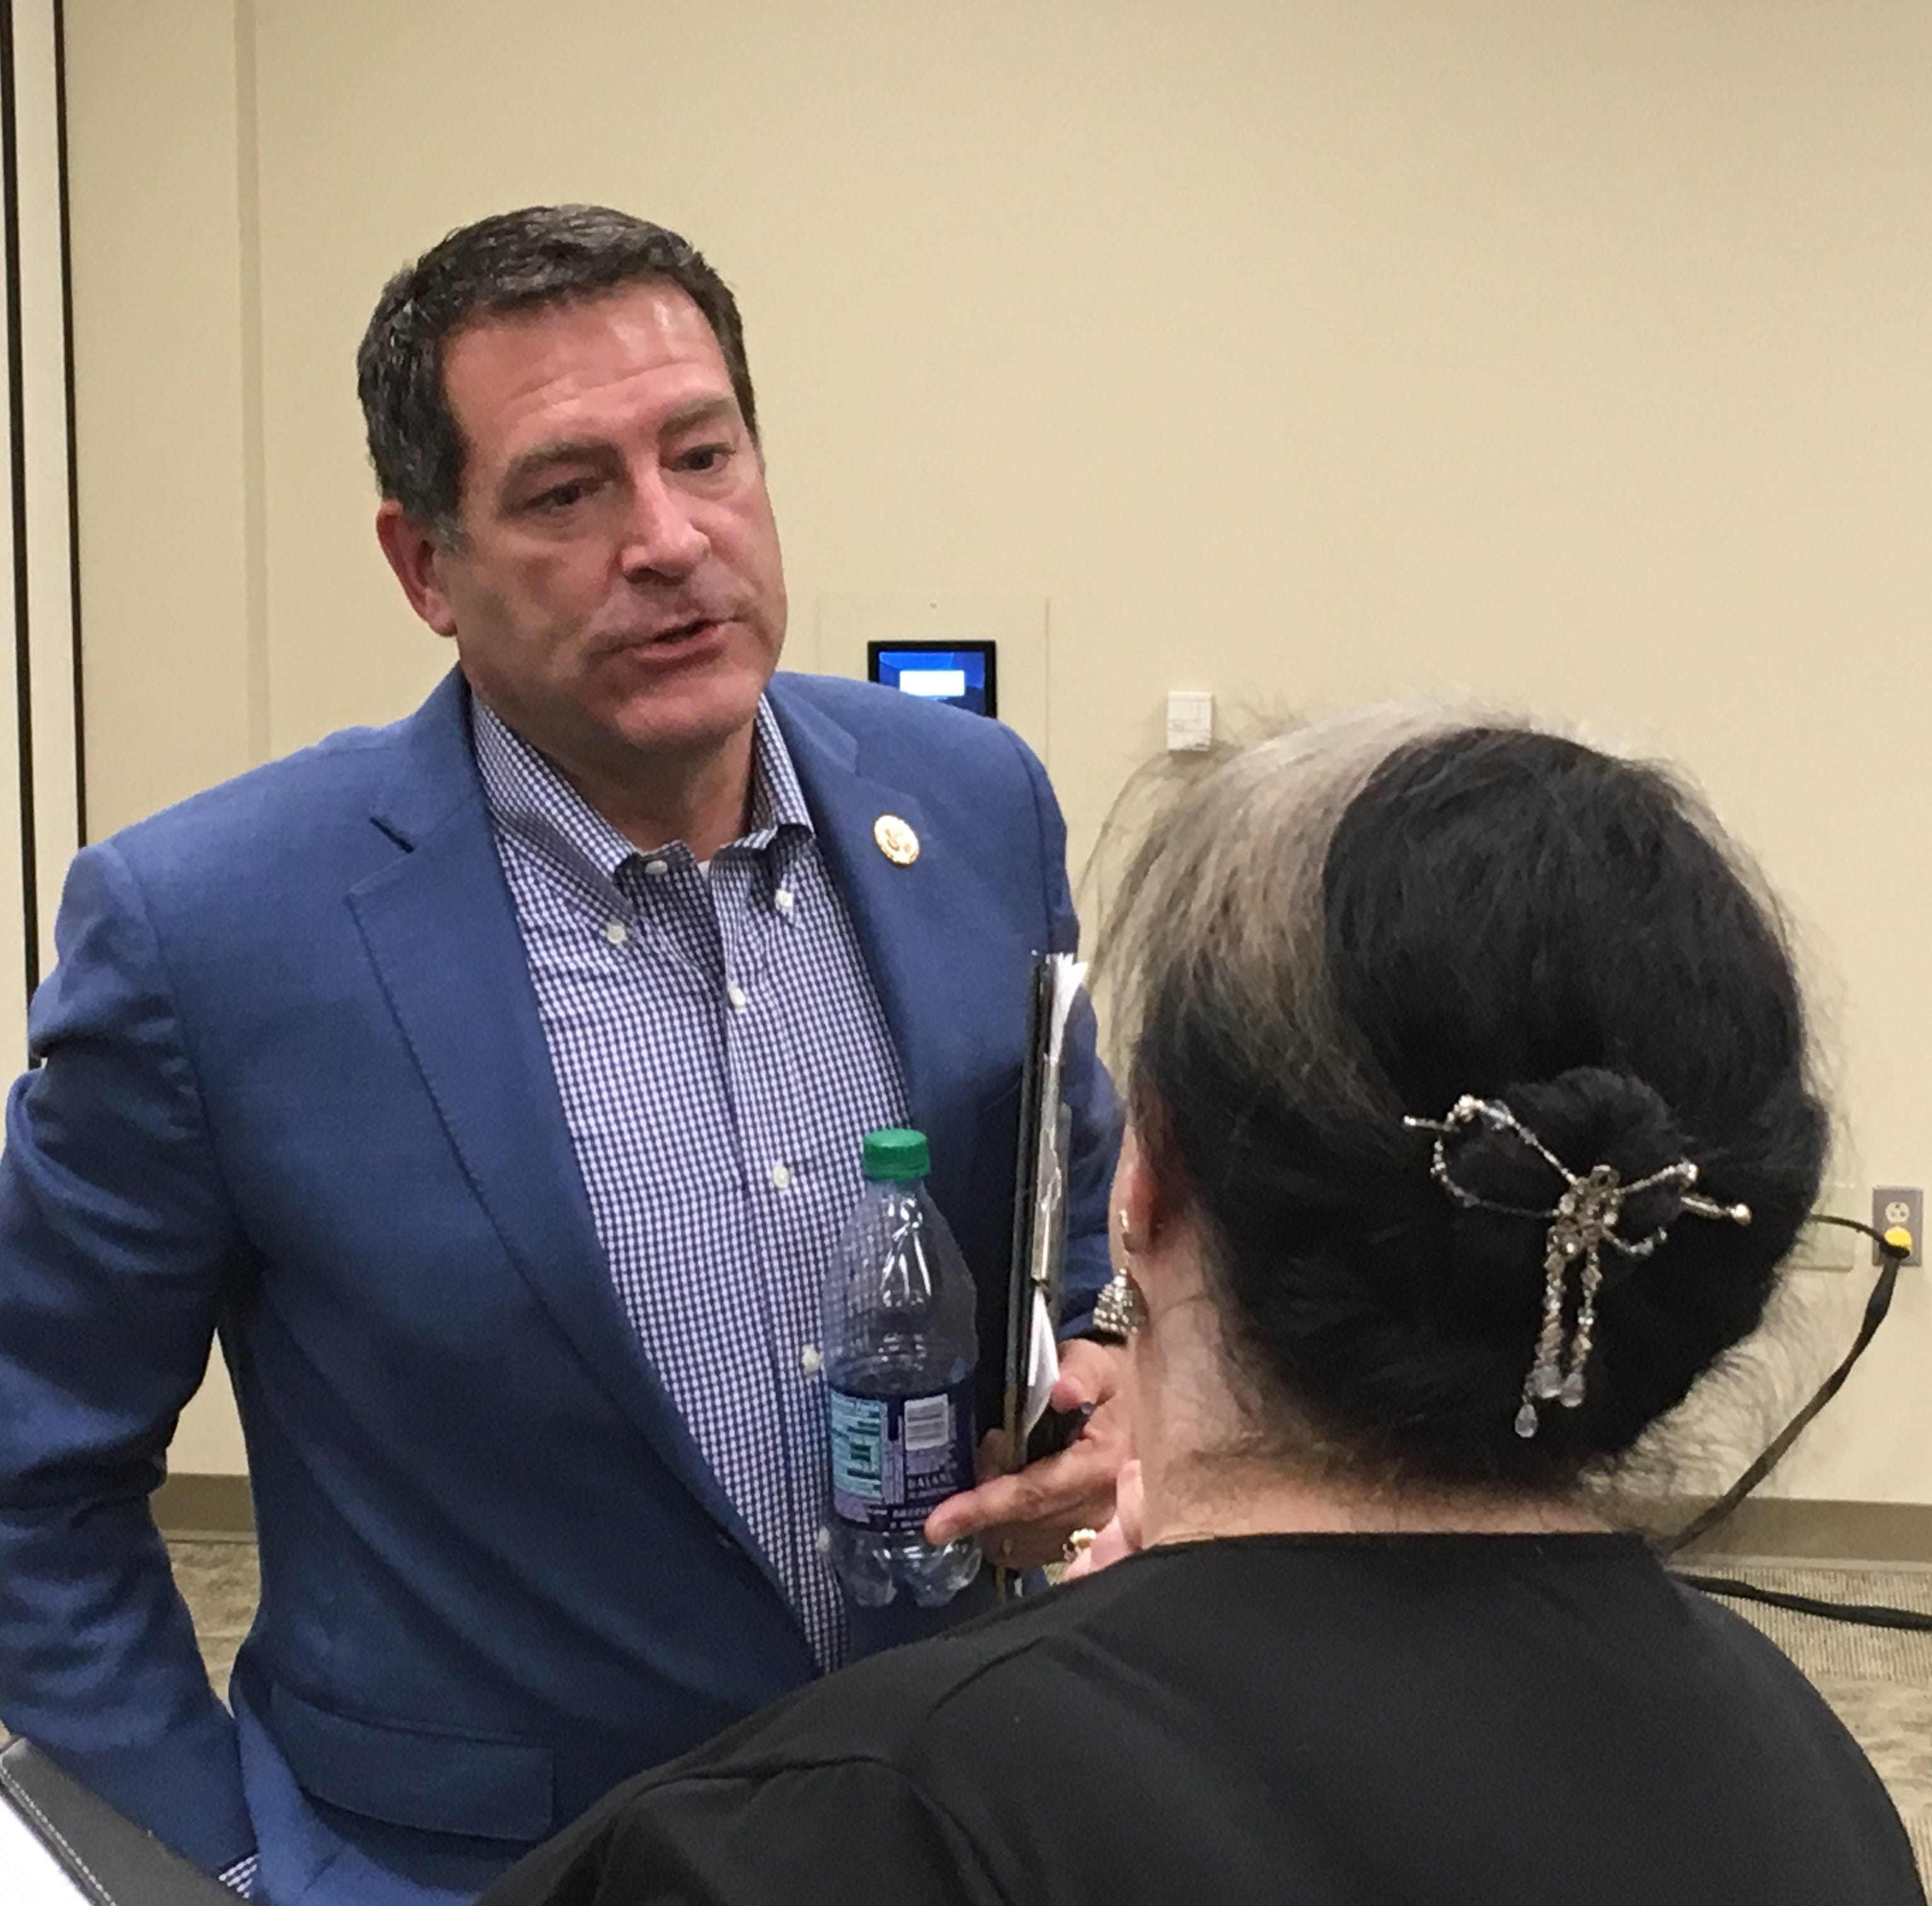 Rep. Mark Green calls for focus on priorities other than Trump investigations